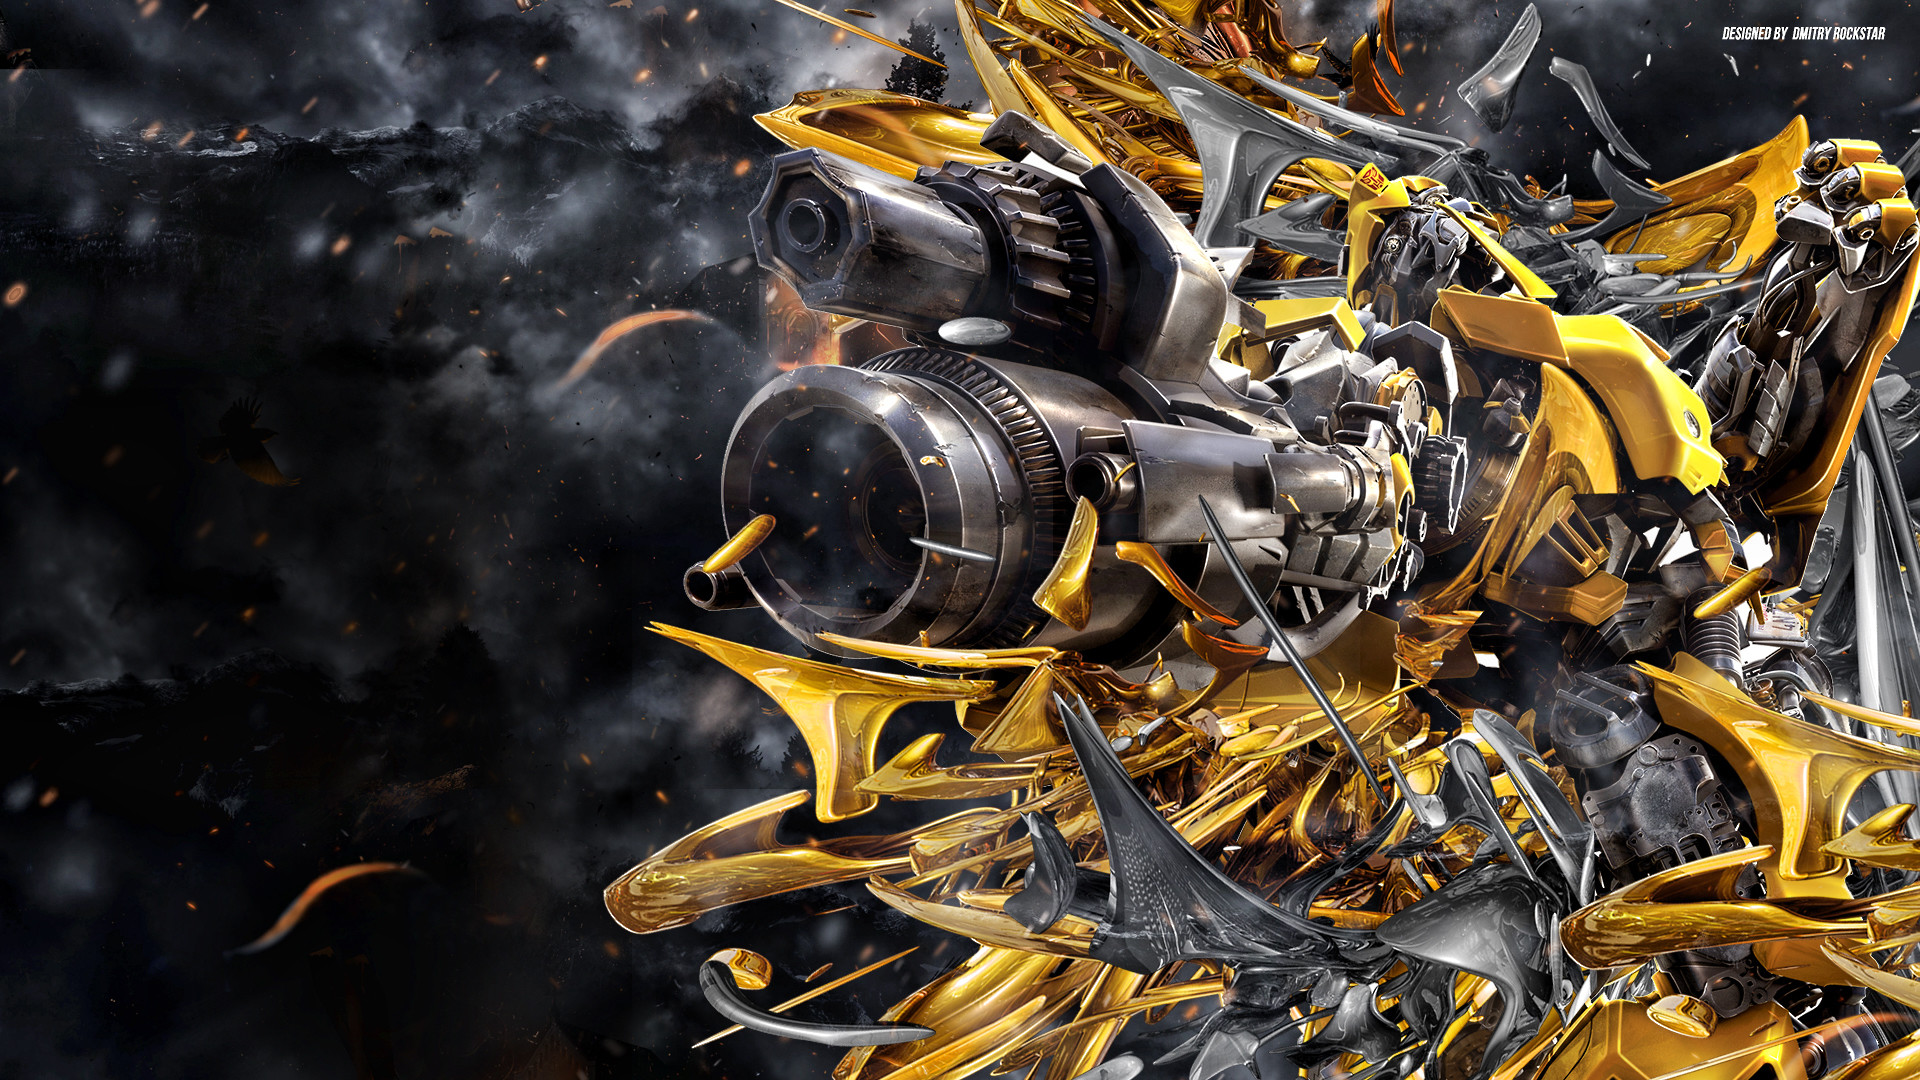 Res: 1920x1080, Transformers Bumblebee Pics (PC, Mobile, Gadgets) Compatible |  px